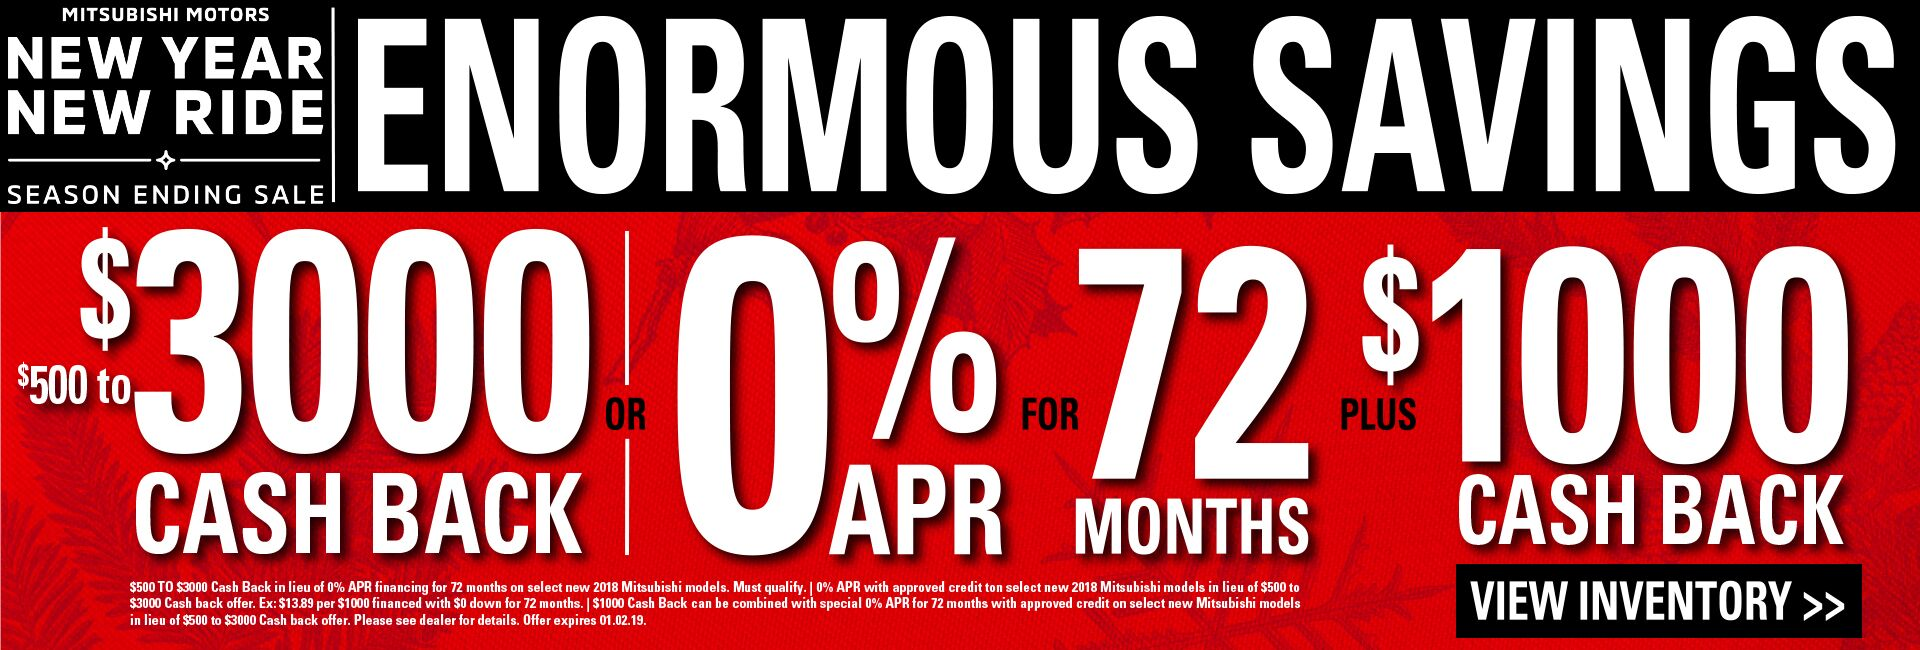 Enormous Savings at Continental Mitsubishi